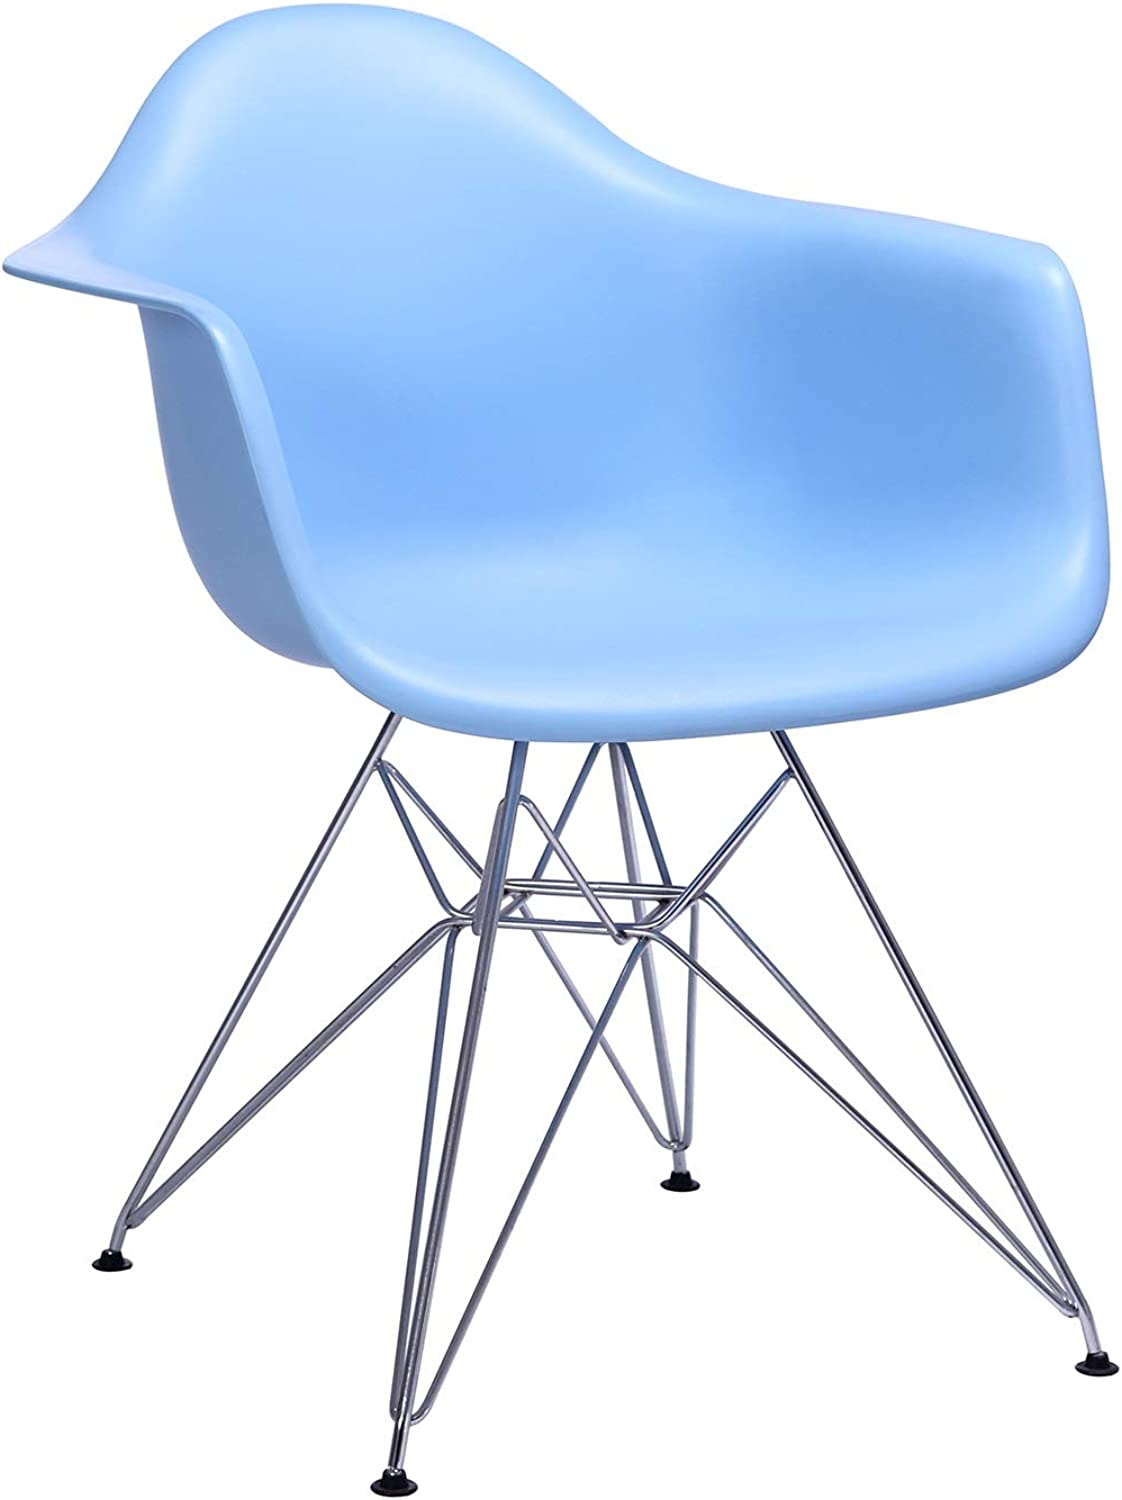 LRW European Style Plastic Chair Armrest, Leisure Home Chair, Chair, Chair, bluee